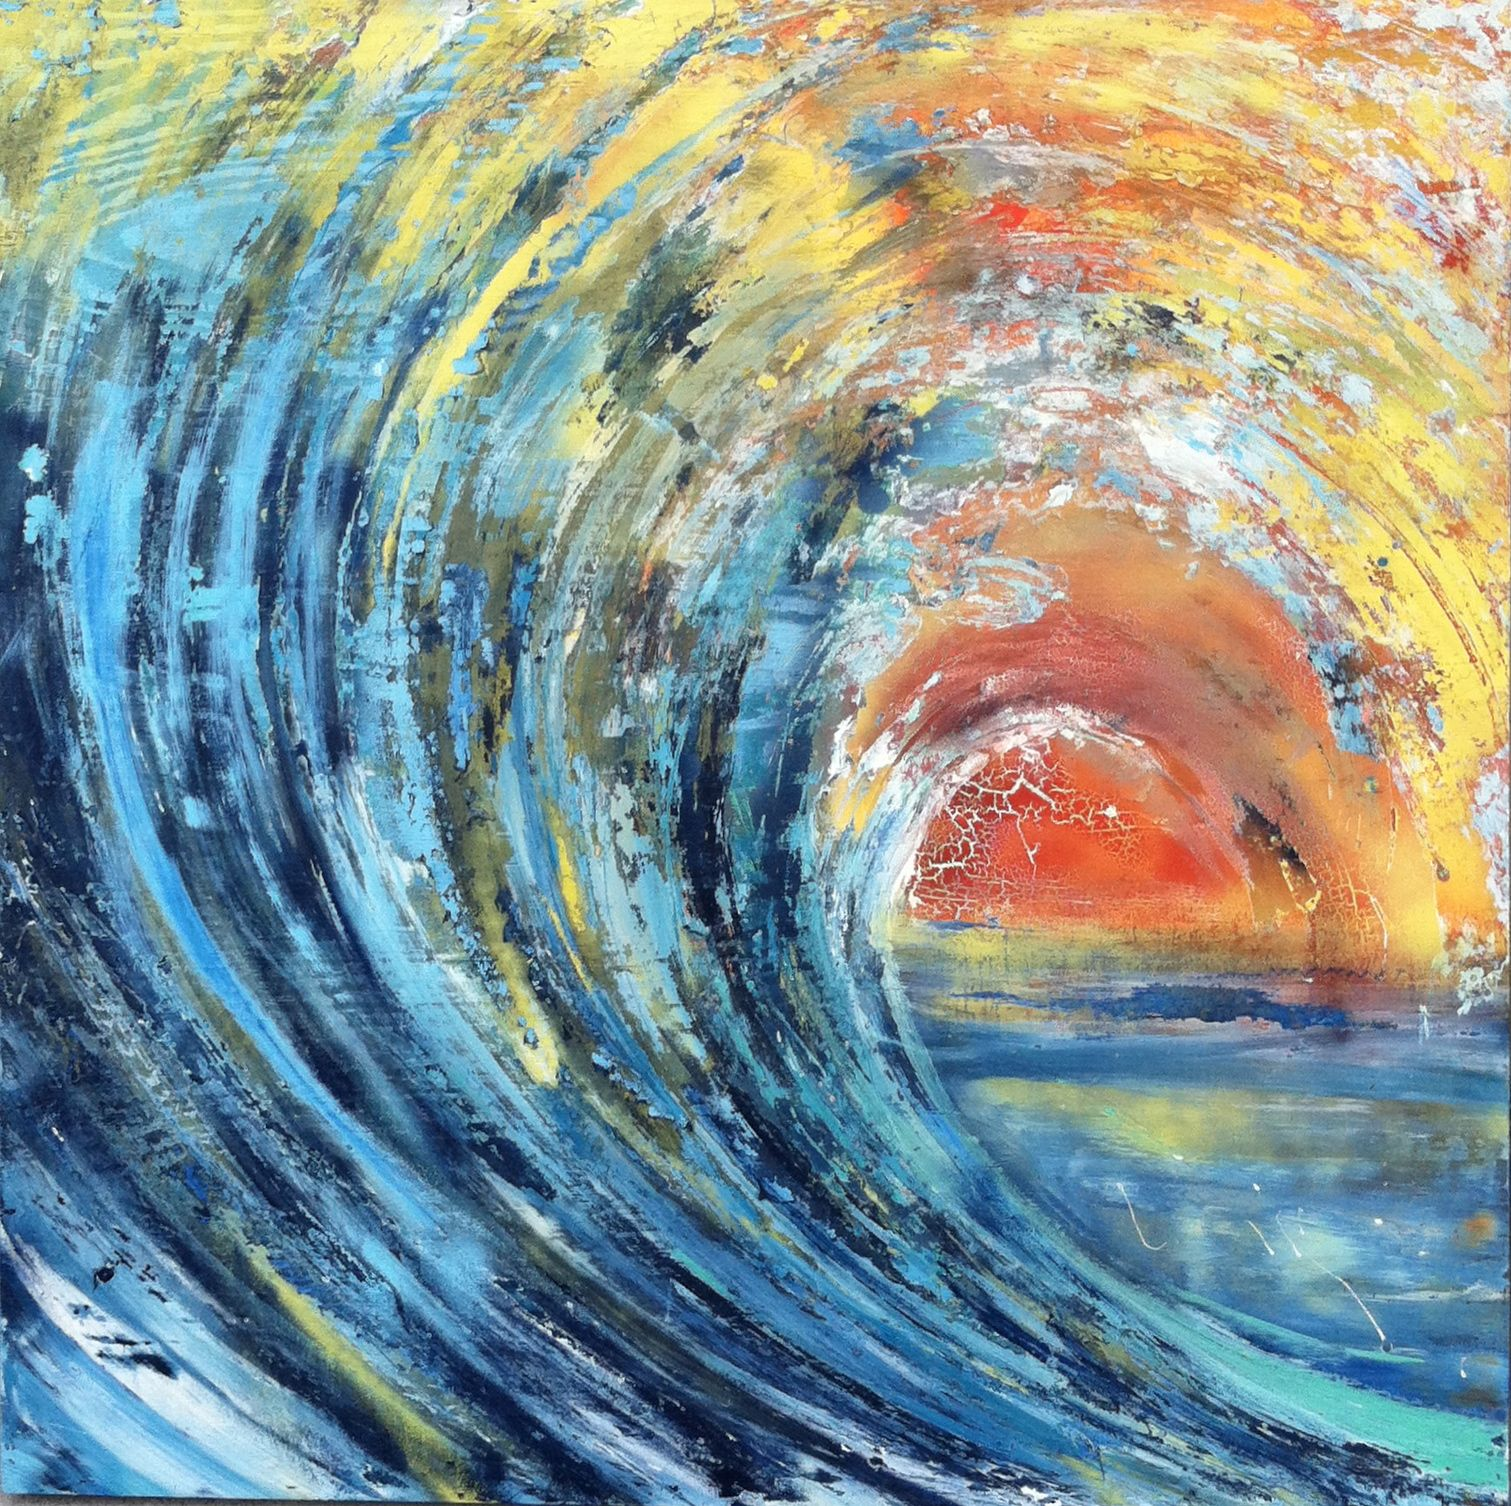 1000 Images About Paint On Pinterest: Wave Acrylic Painting 1000+ Images About Wave Painting On